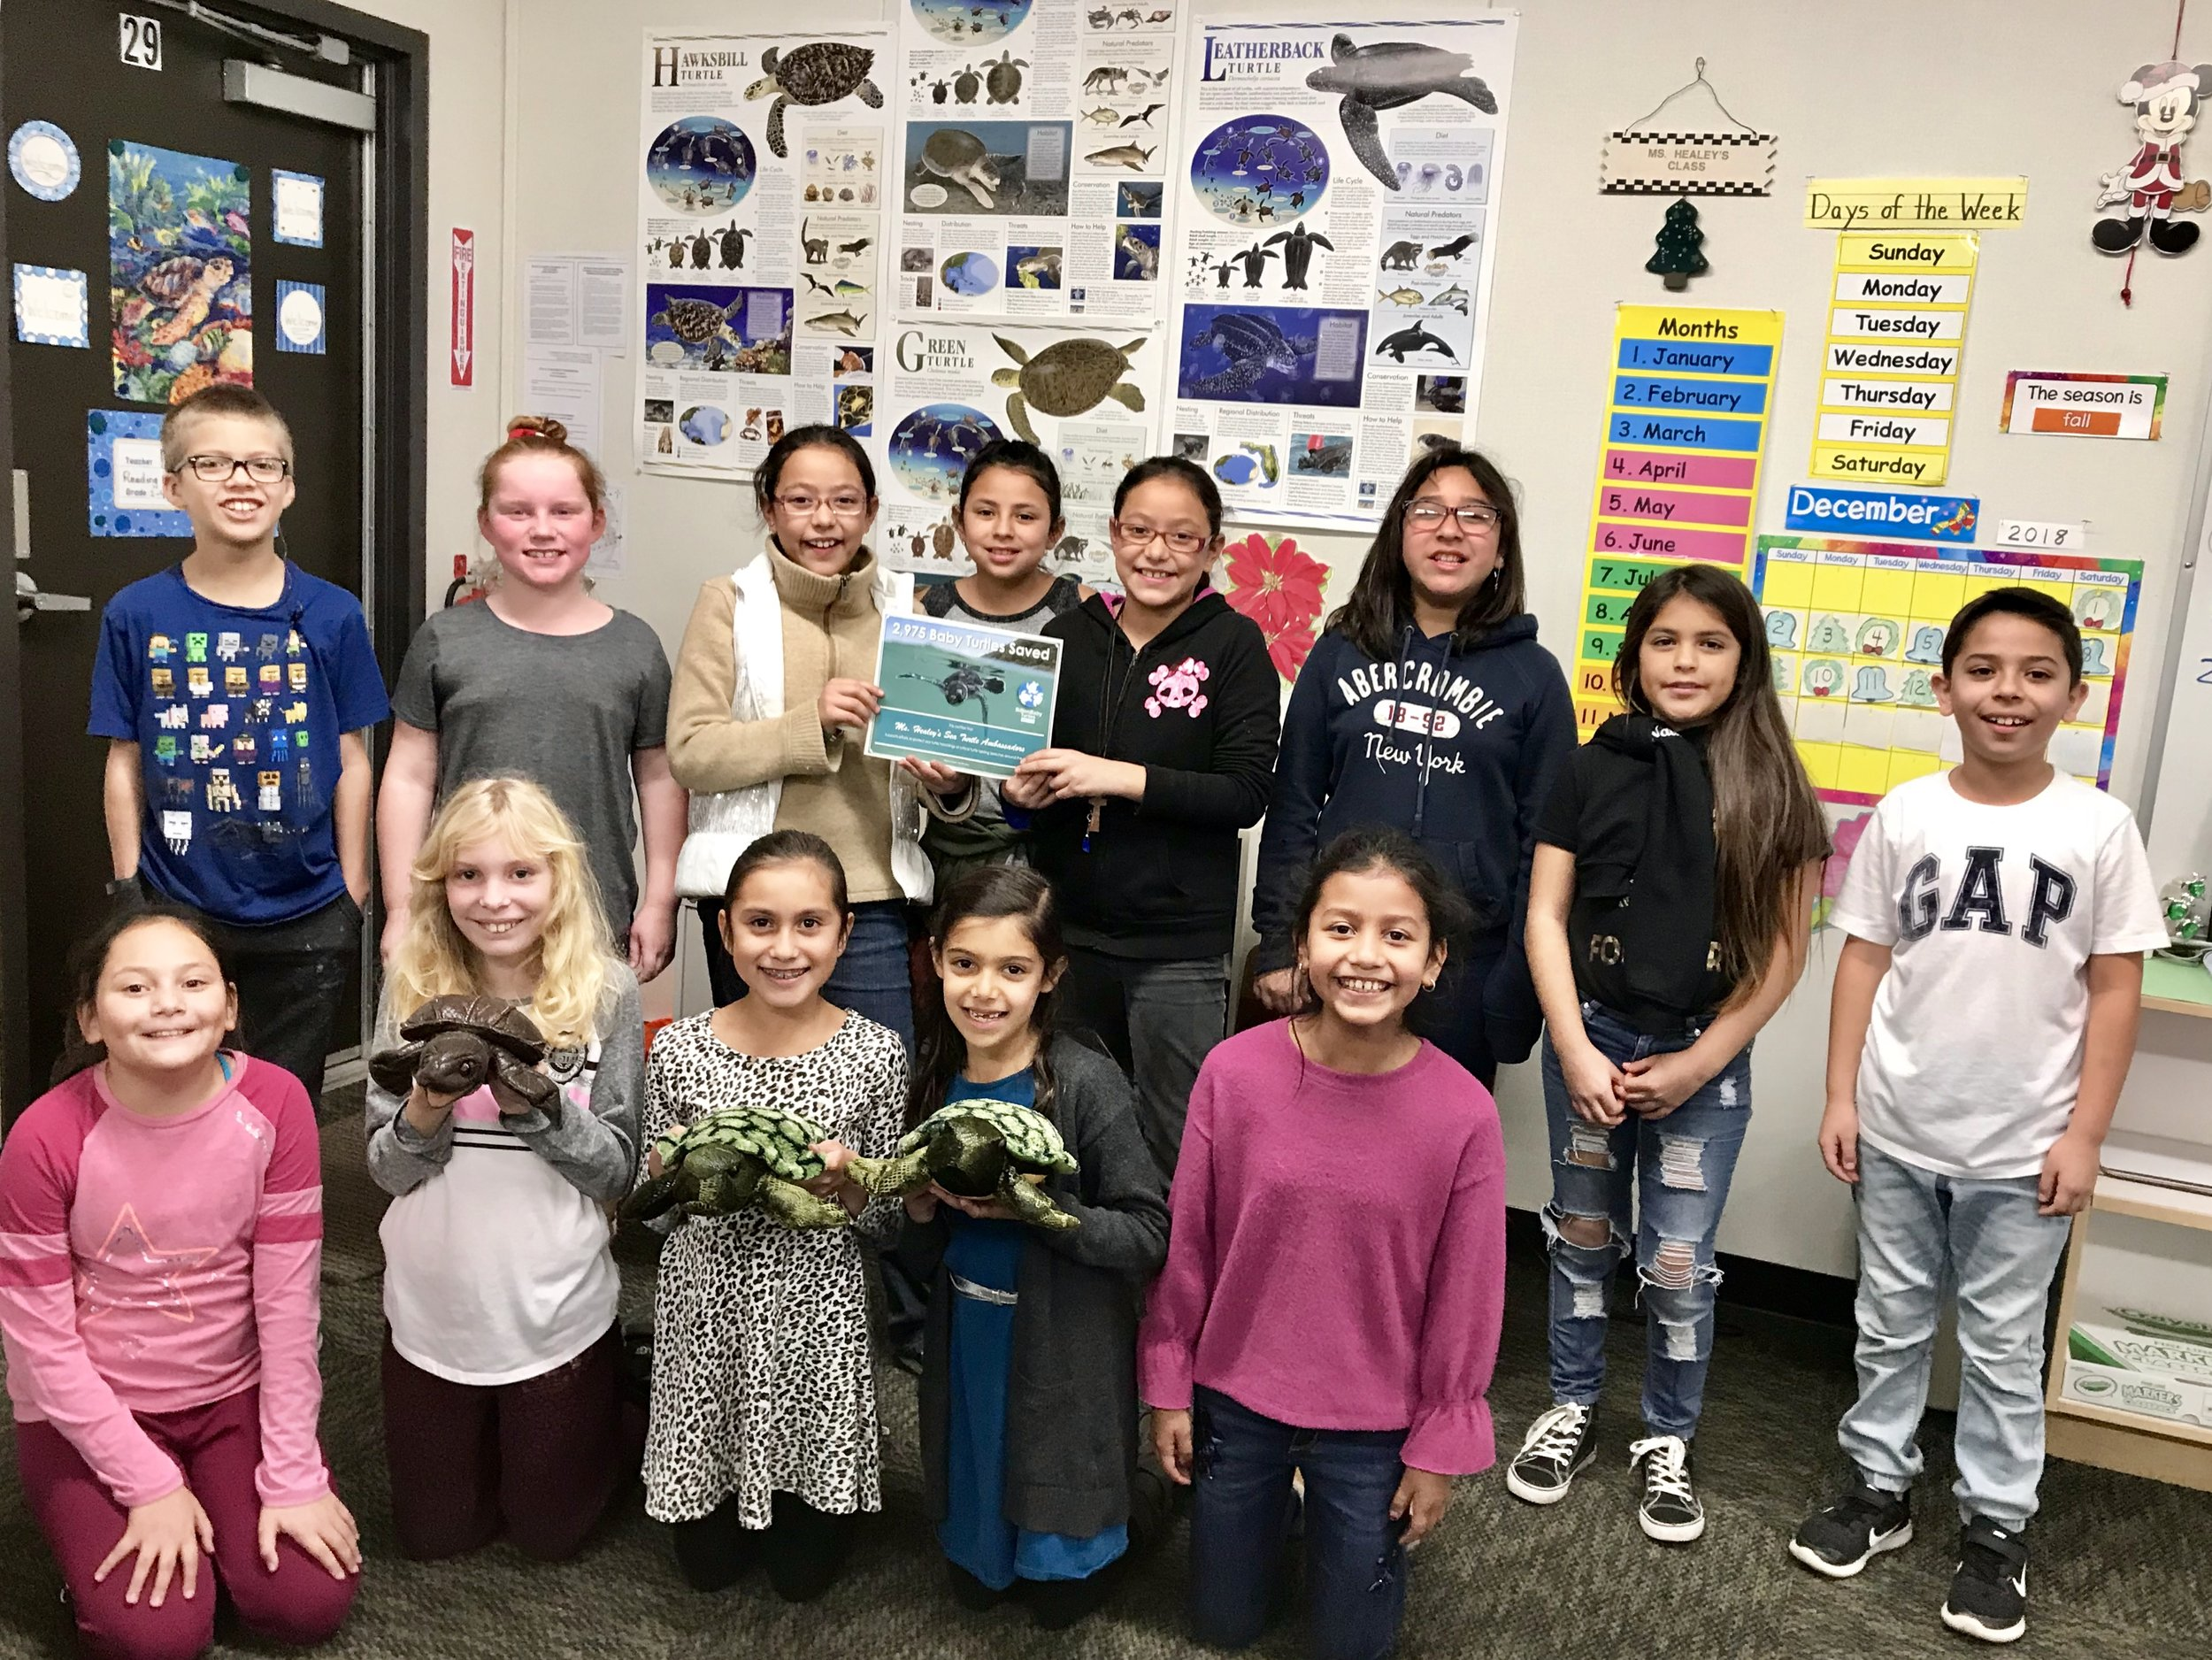 Jefferson Elementary (CA) Sea Turtle Ambassadors